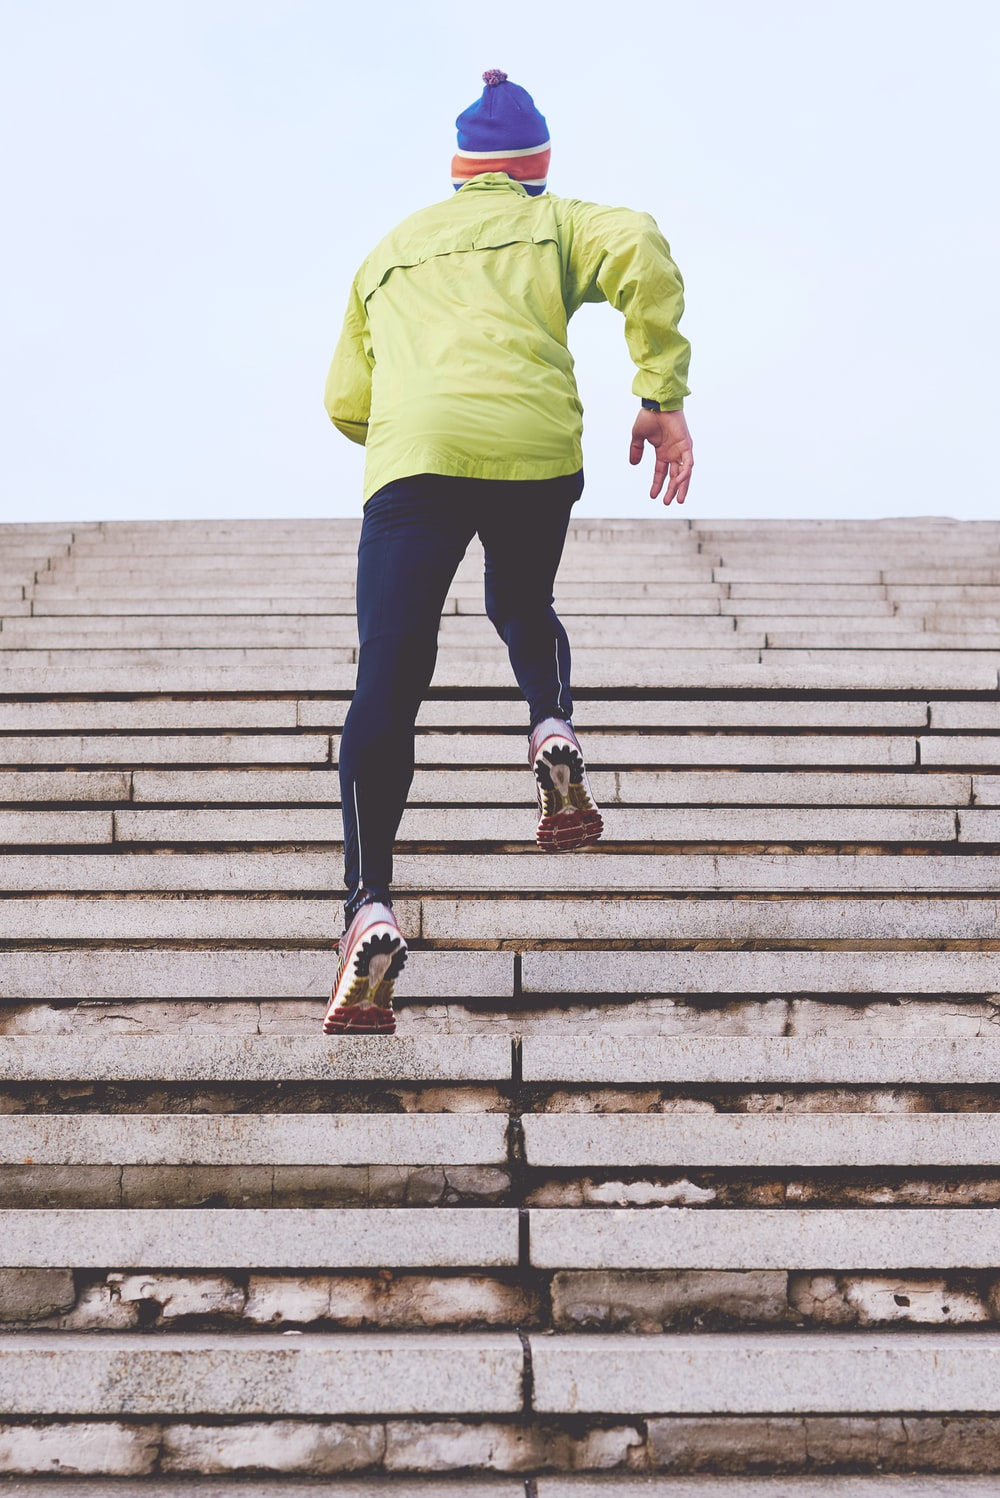 Running stair can be an effective micro-workout HIIT option to build cardio.